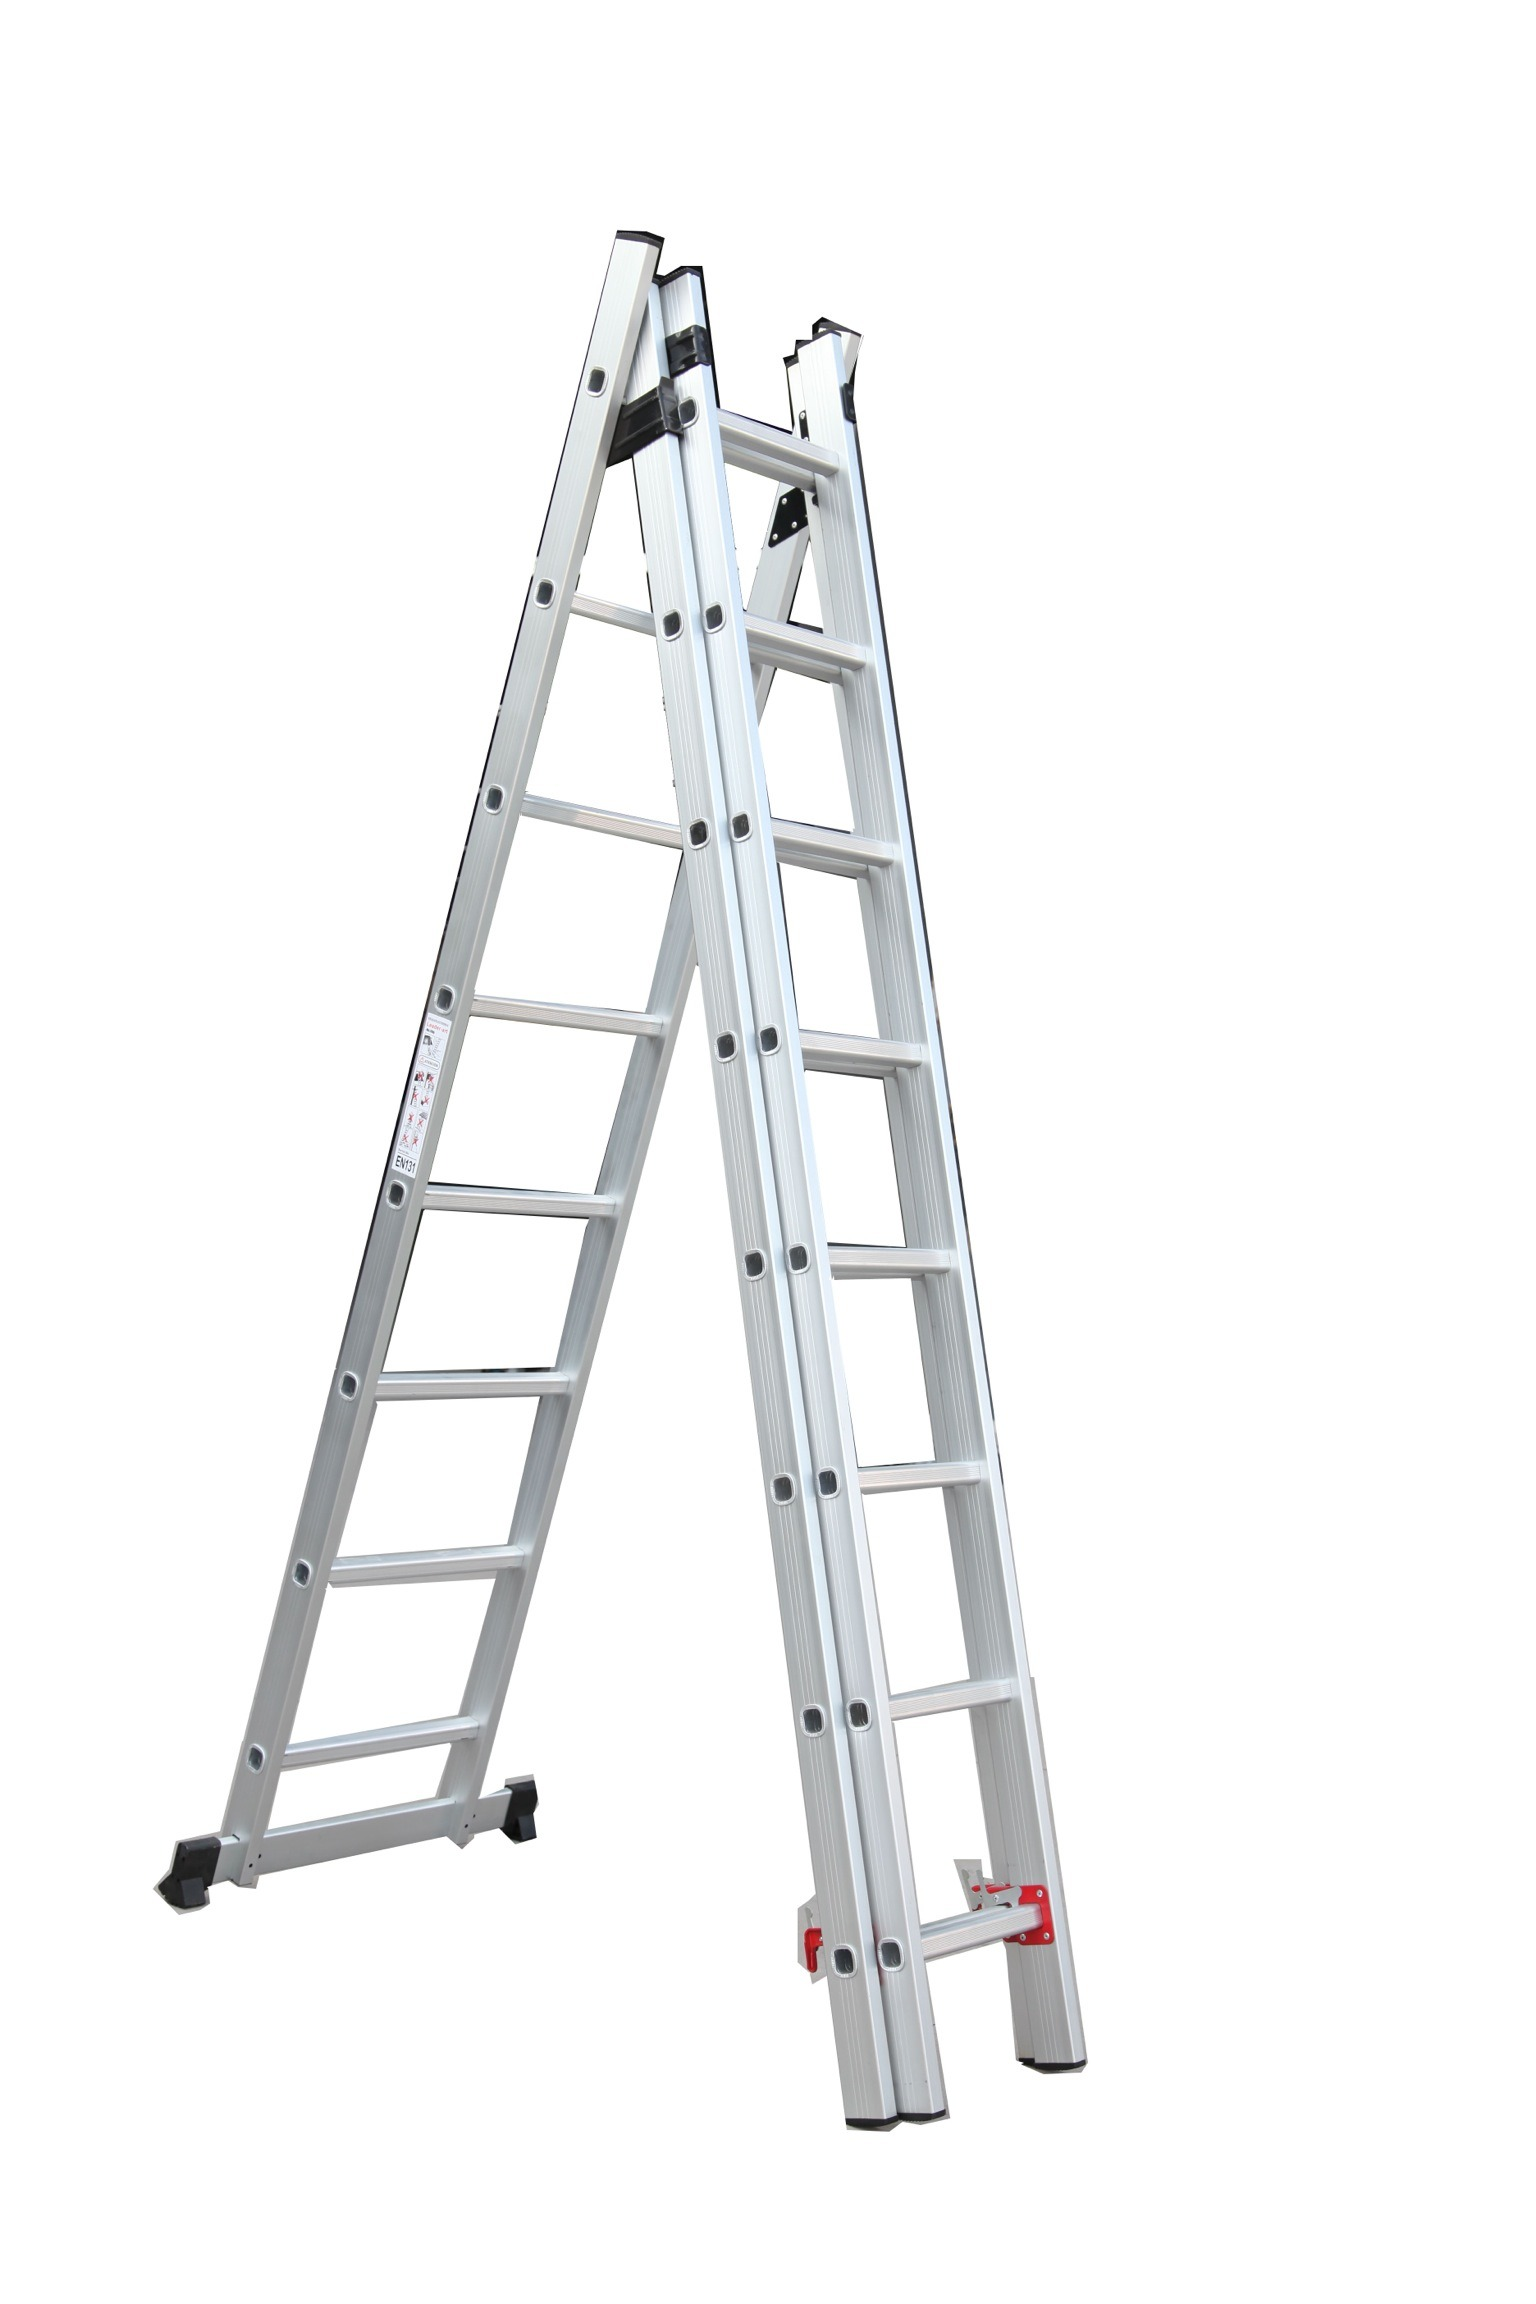 3 Section Extension Ladder : China smart design for section extension ladder photos